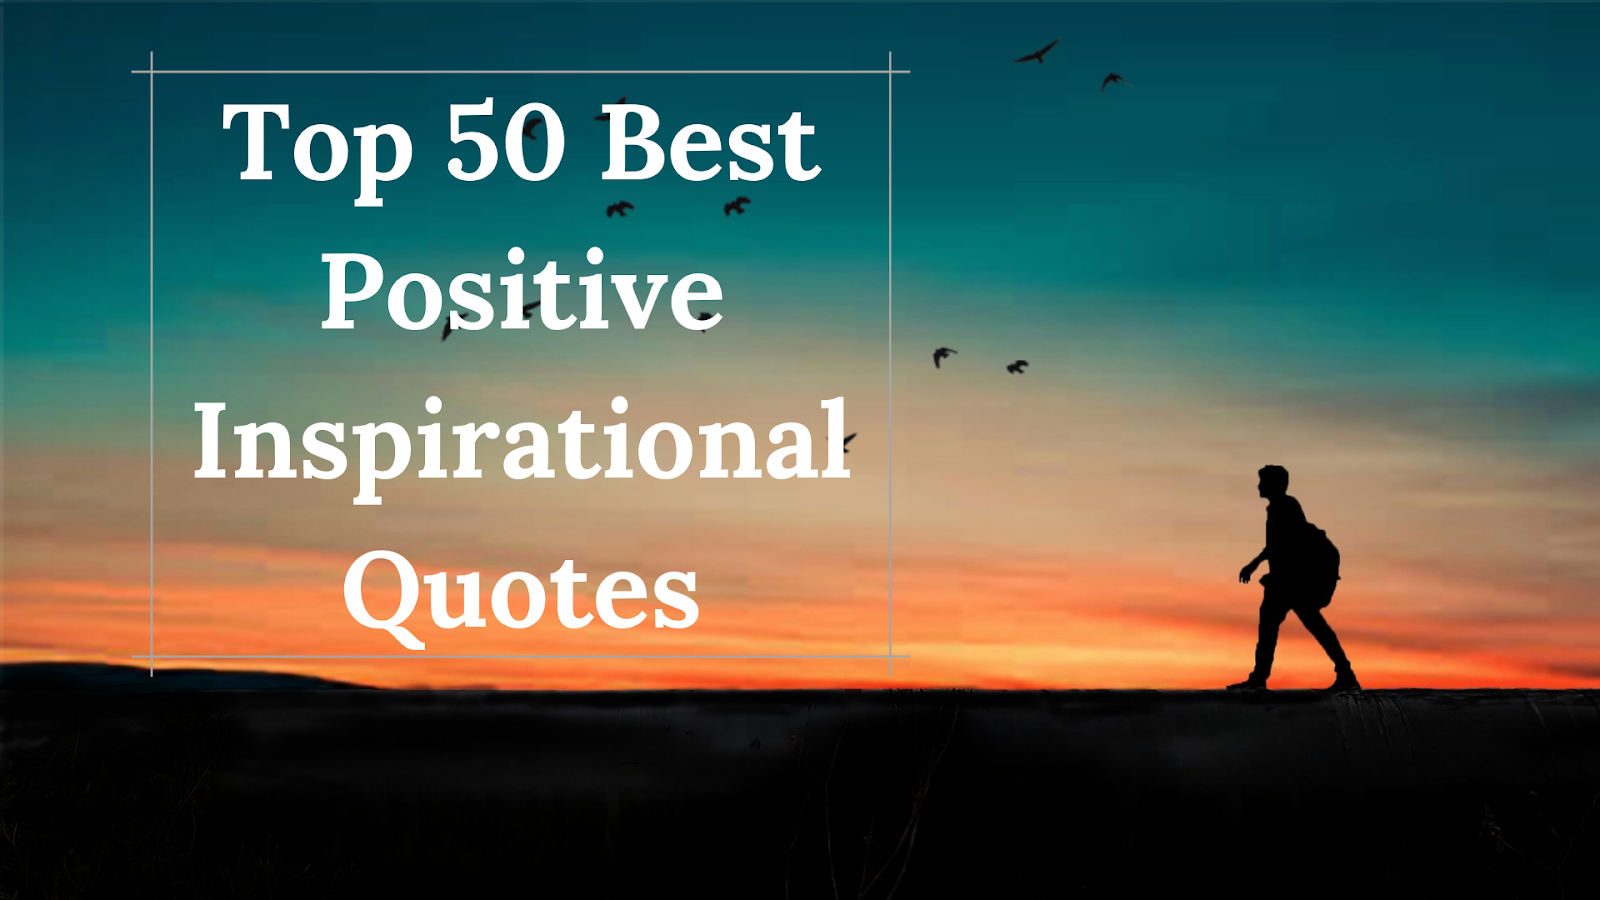 Top 50 Best Positive Inspirational Quotes